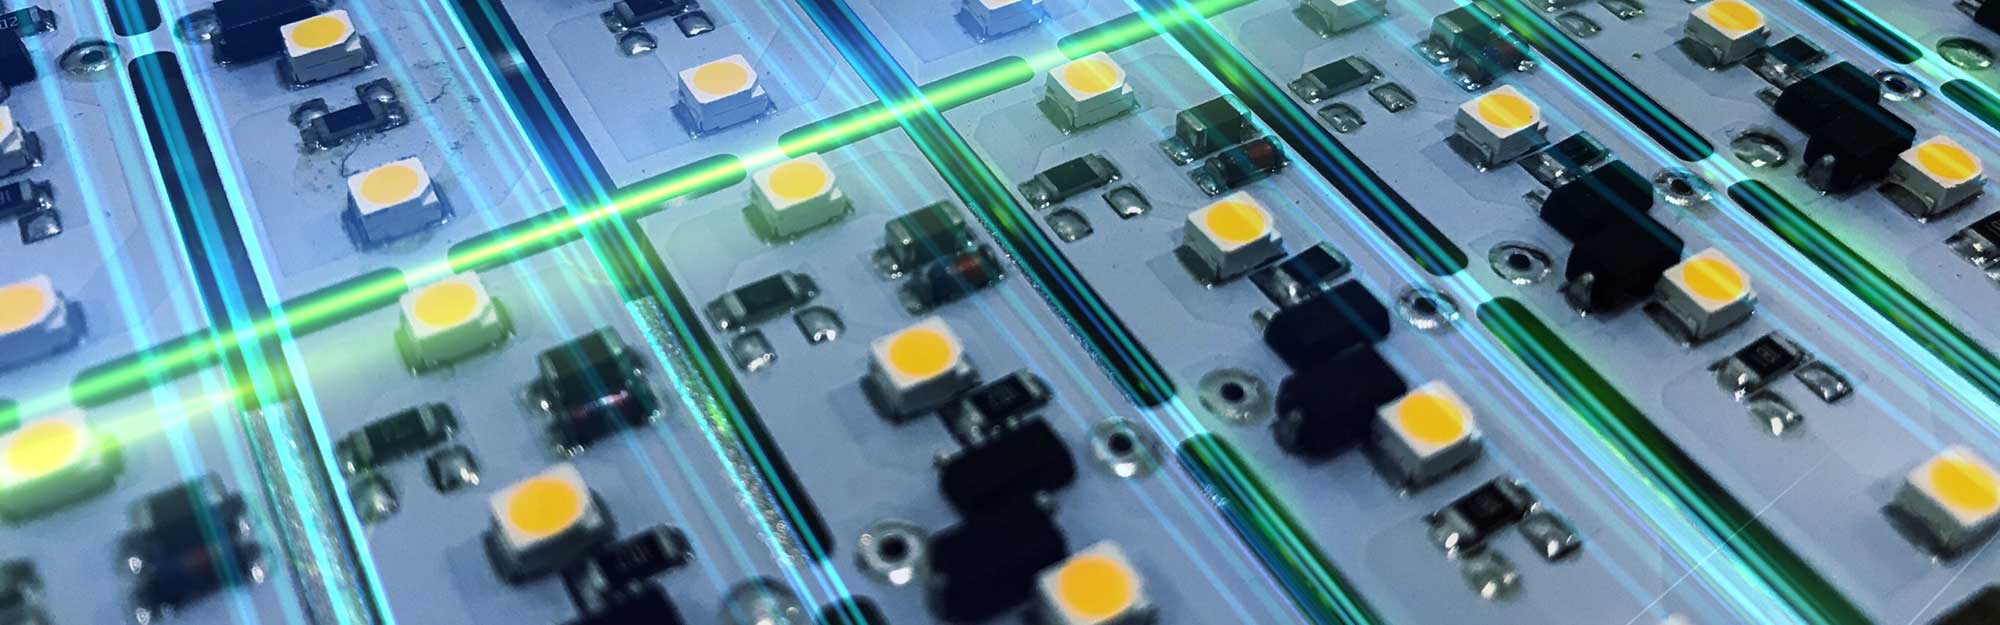 printed circuit boards 3